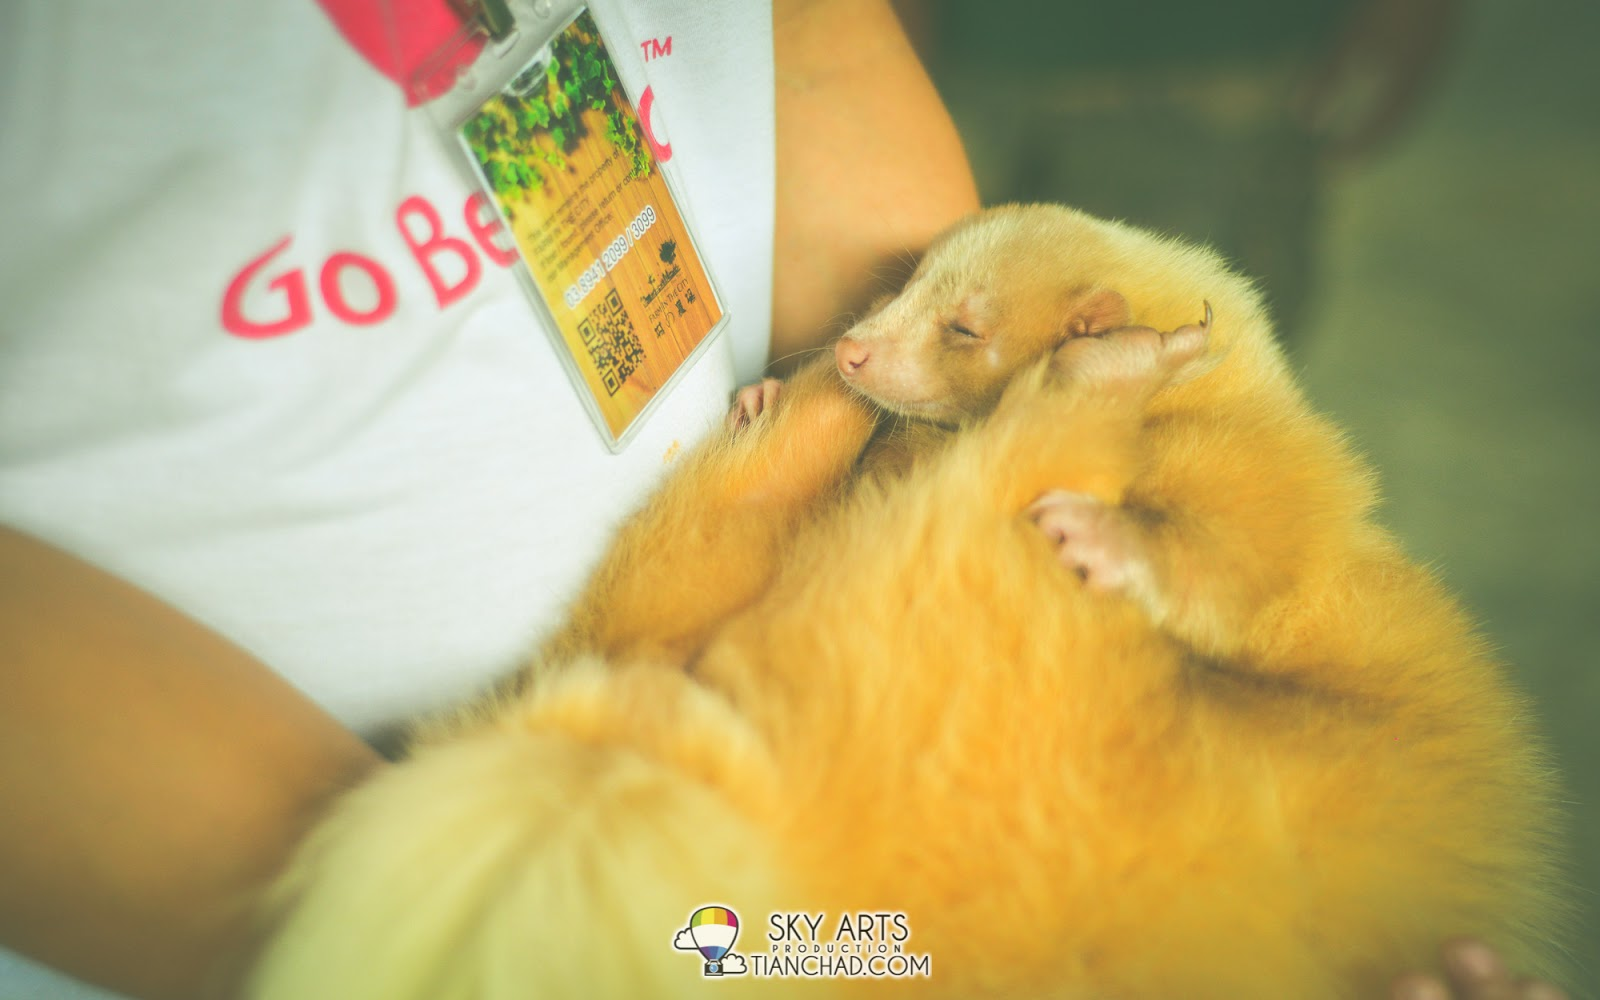 Albino skunk sleeping soundly in her arms